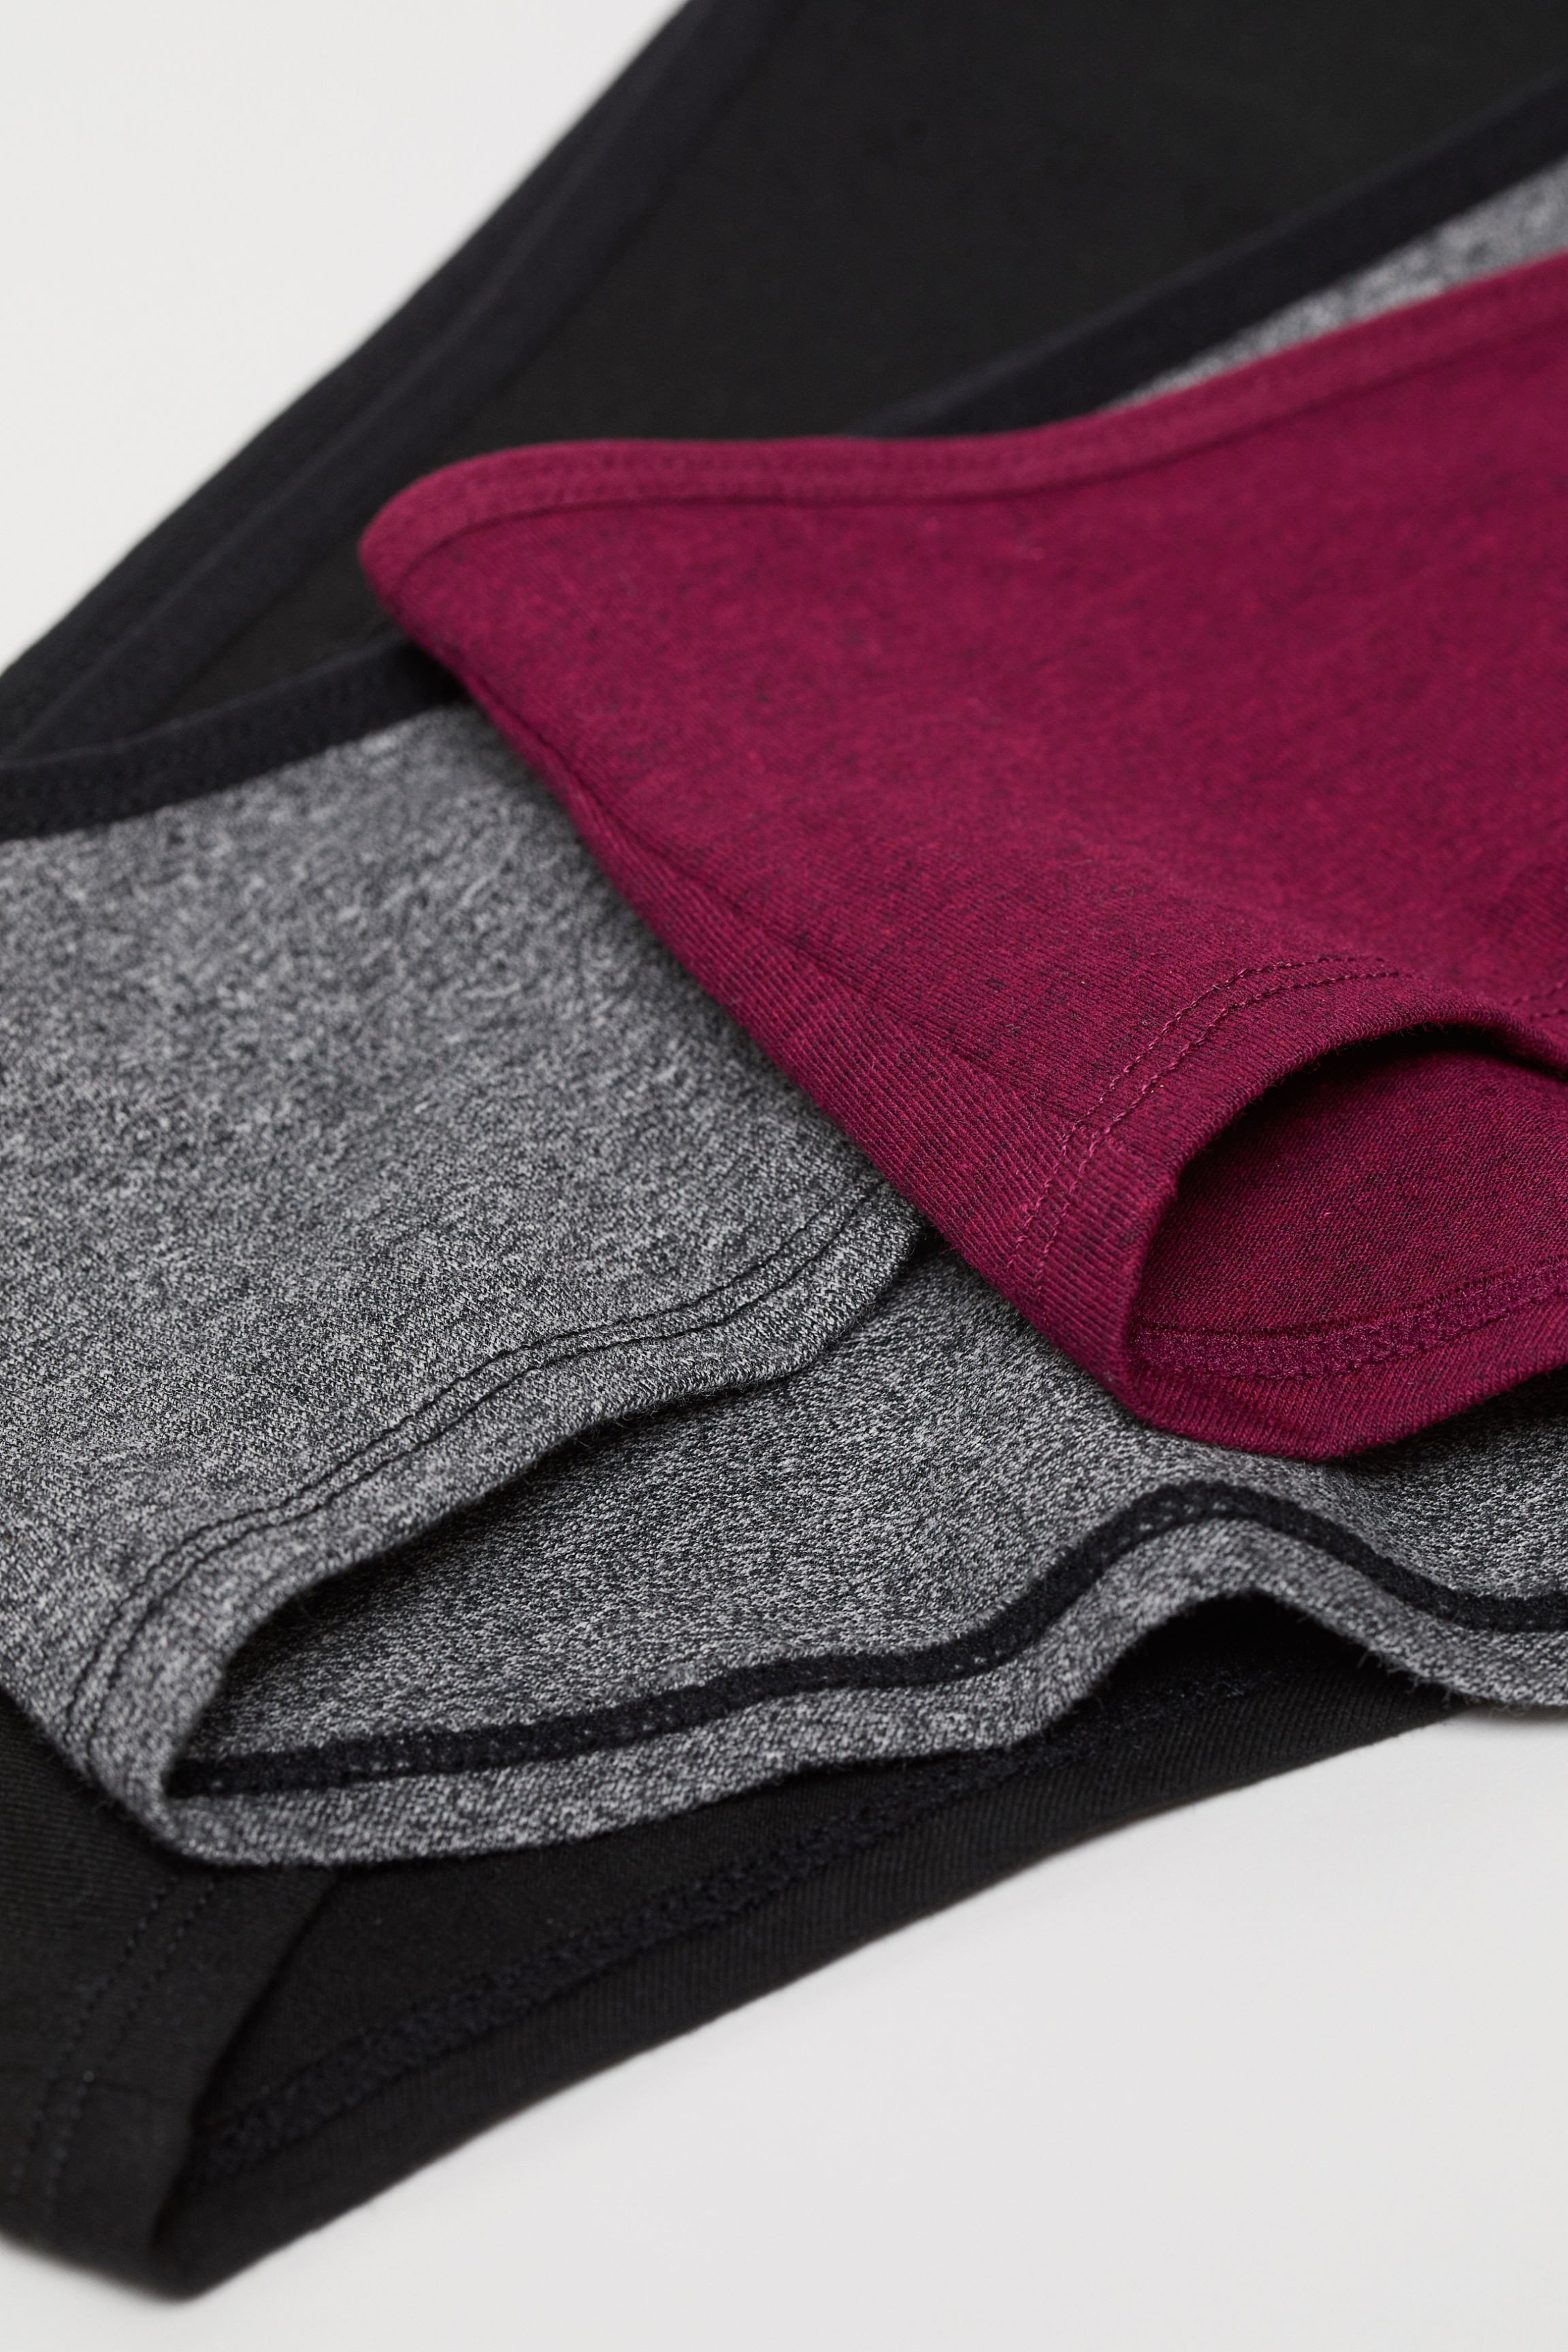 Burgundy and Gray Bedroom Elegant 3 Pack Cotton Hipster Briefs